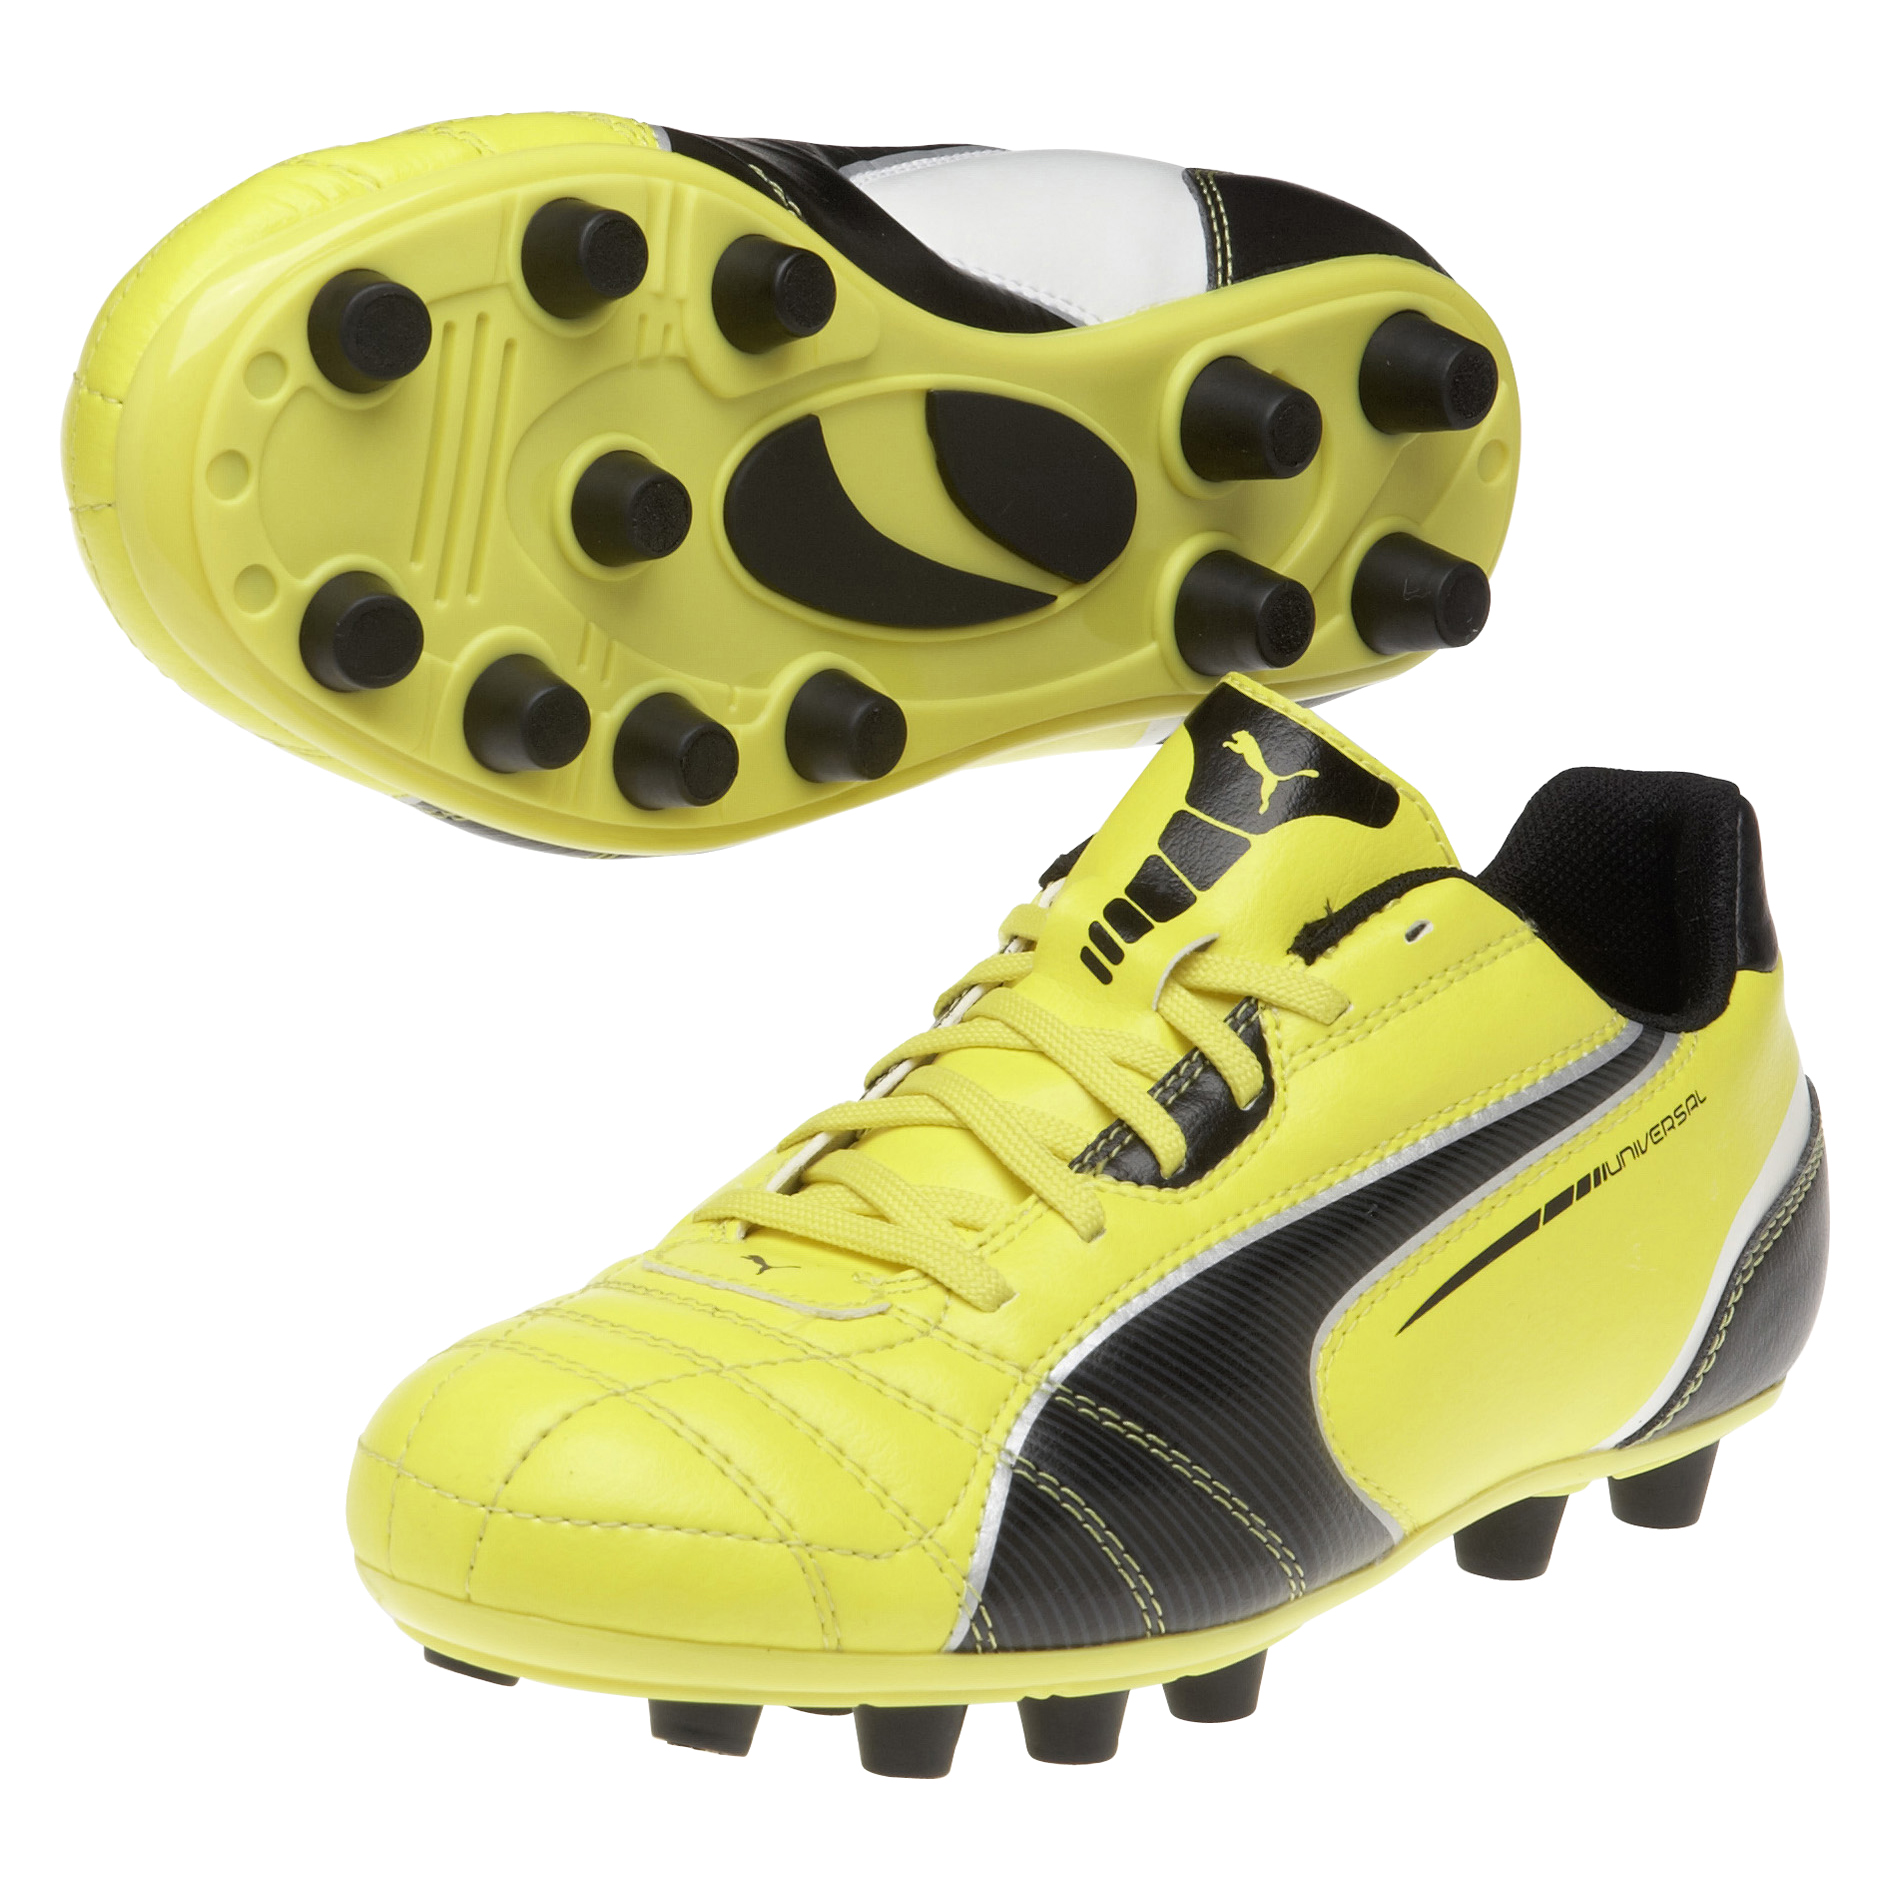 Puma Universal Firm Ground Football Boots - Blazing Yellow/Black/White - Kids